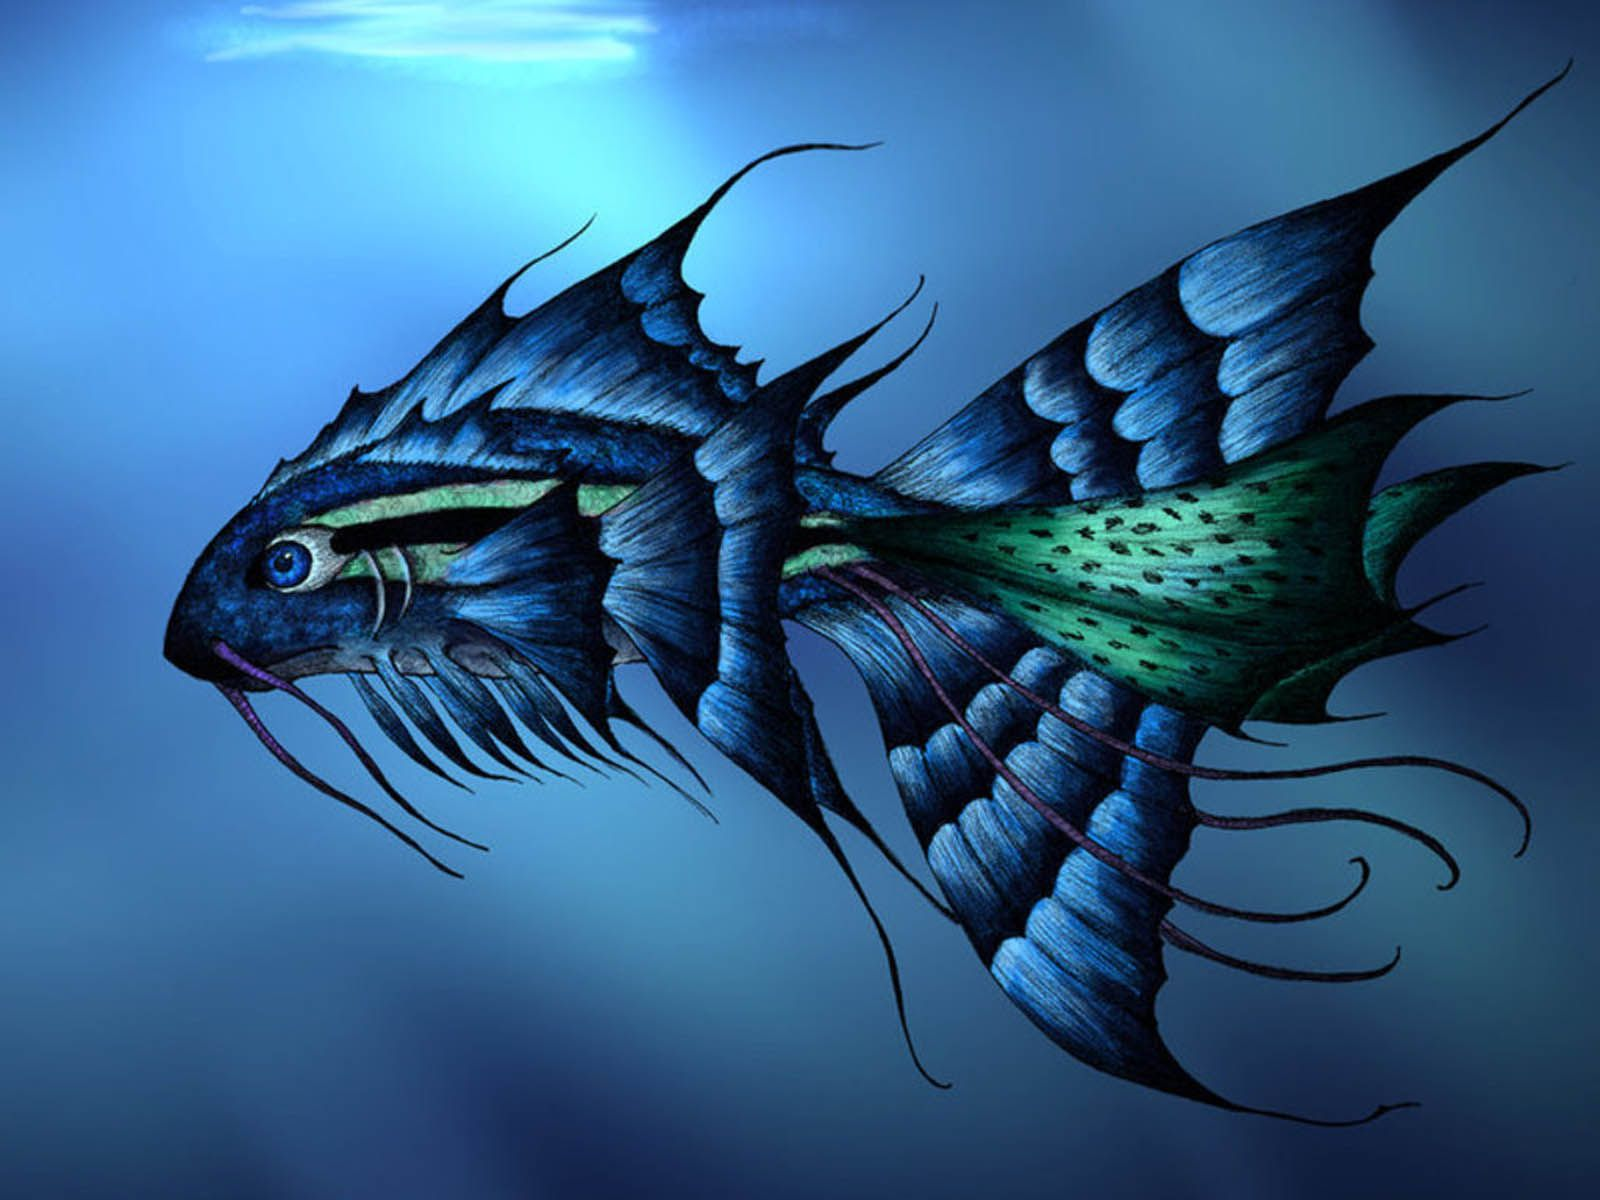 Artistic fish animal why not blue pinterest artistic fish animal wallpaper backgroundsanimal voltagebd Image collections